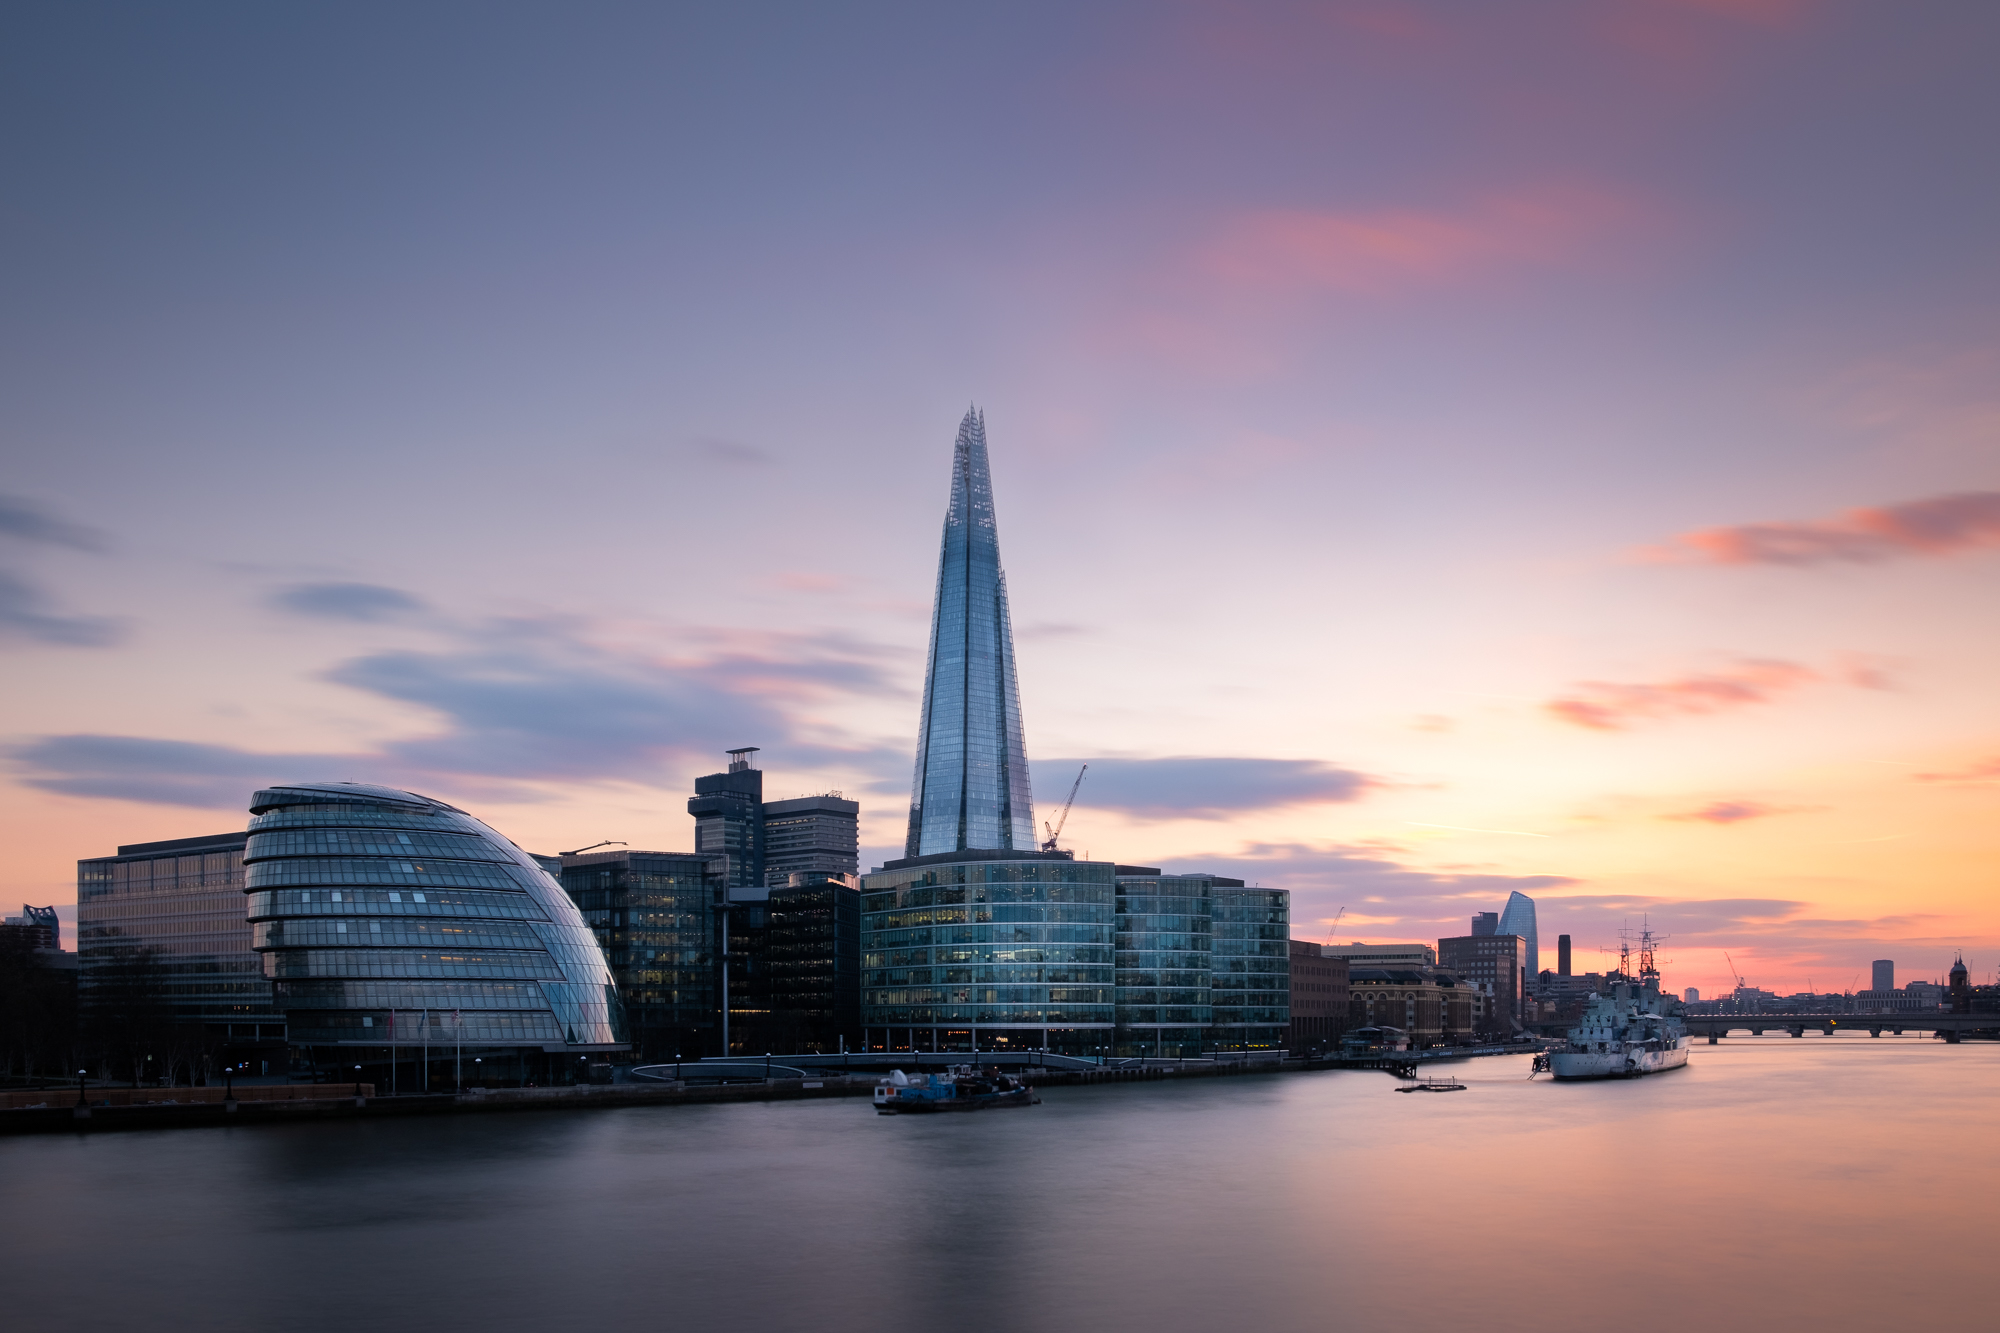 A long exposure of The Shard, London at sunset taken by Trevor Sherwin